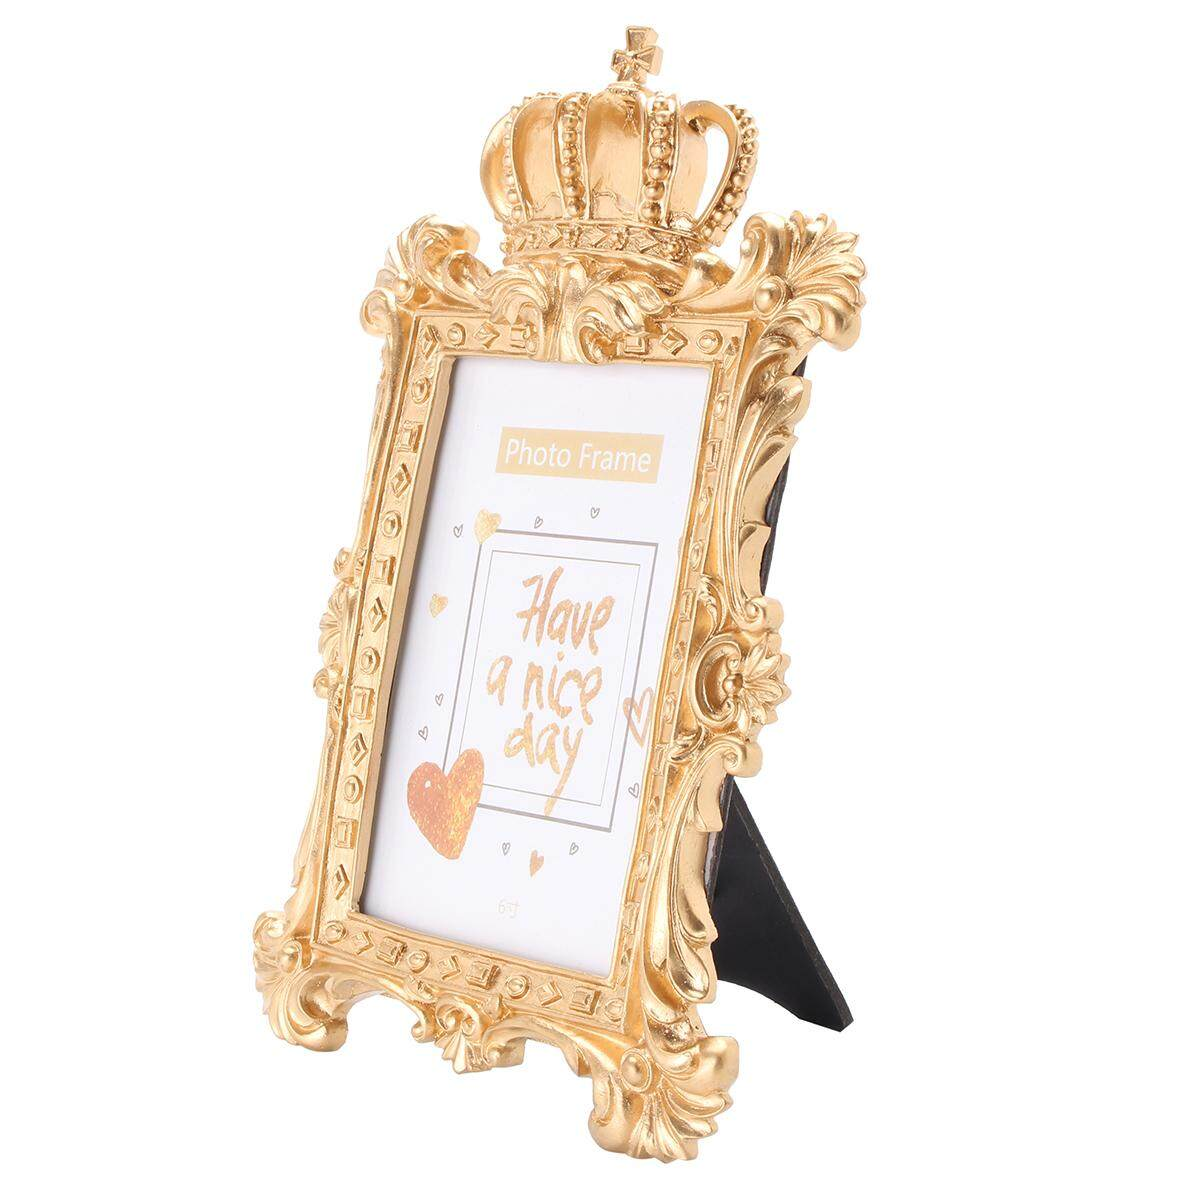 Buy Fashionable Picture Frames | Home Decor | Lazada